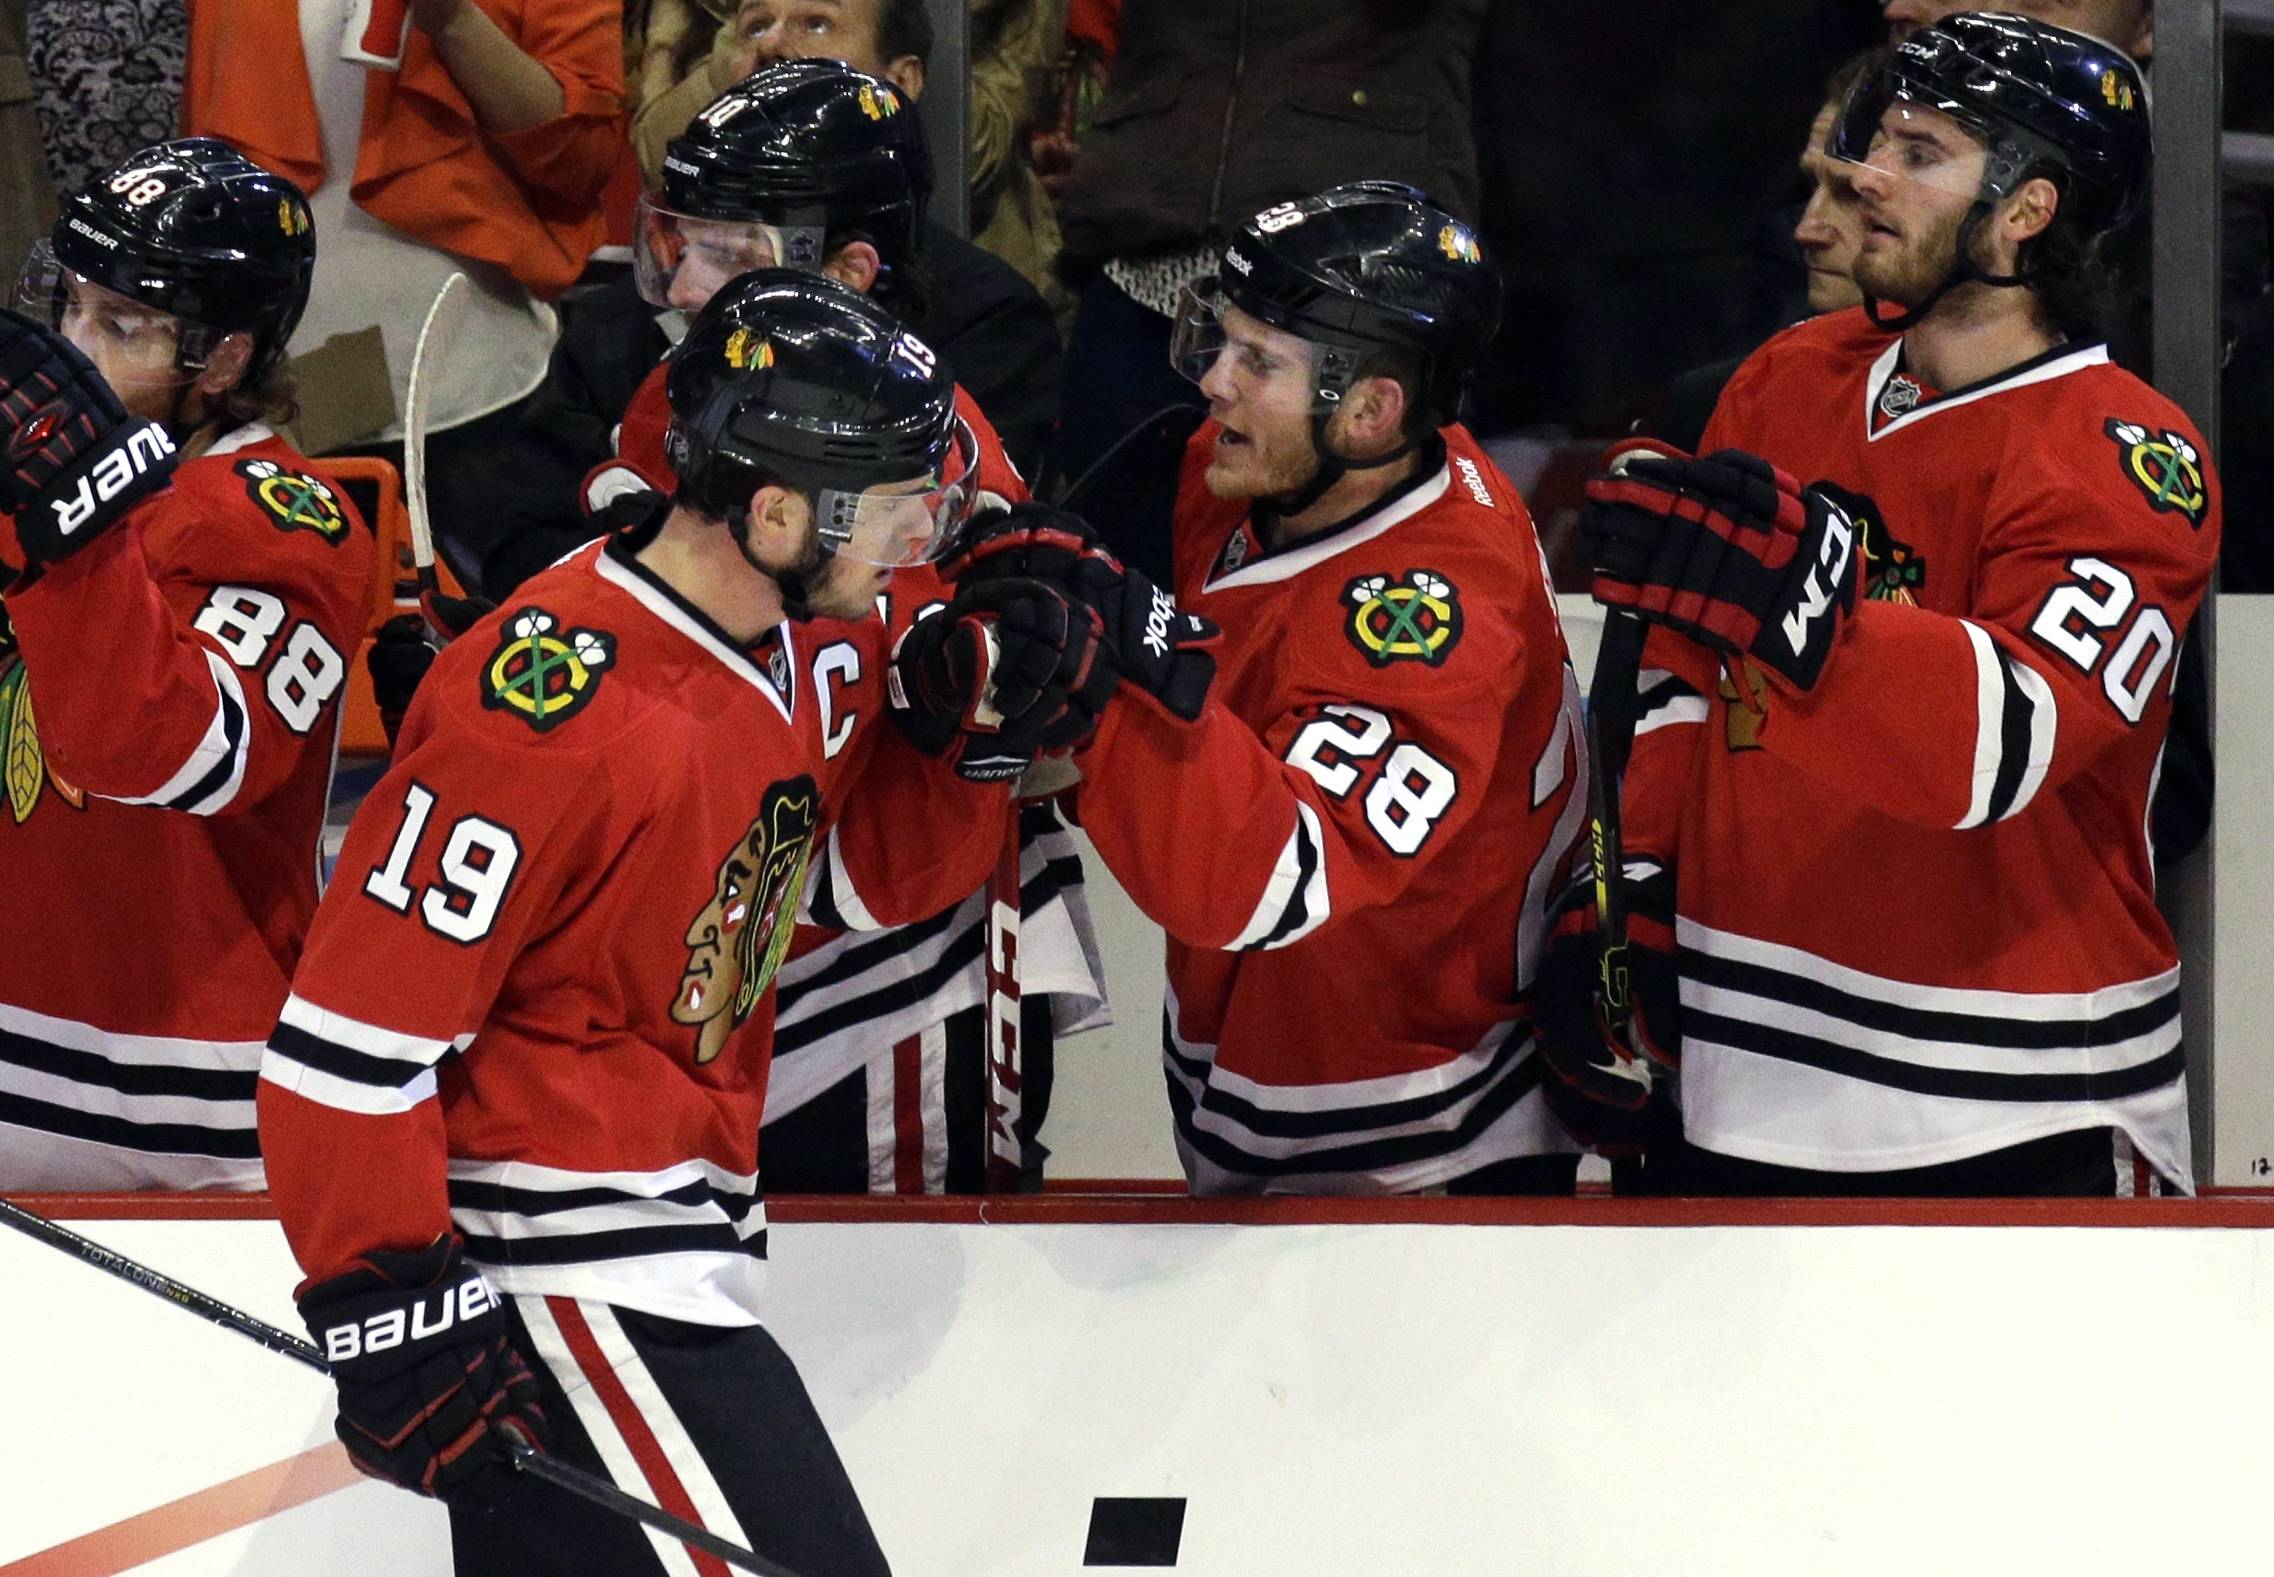 Chicago Blackhawks' Jonathan Toews (19) celebrates with teammates after scoring hi goal during the first period.